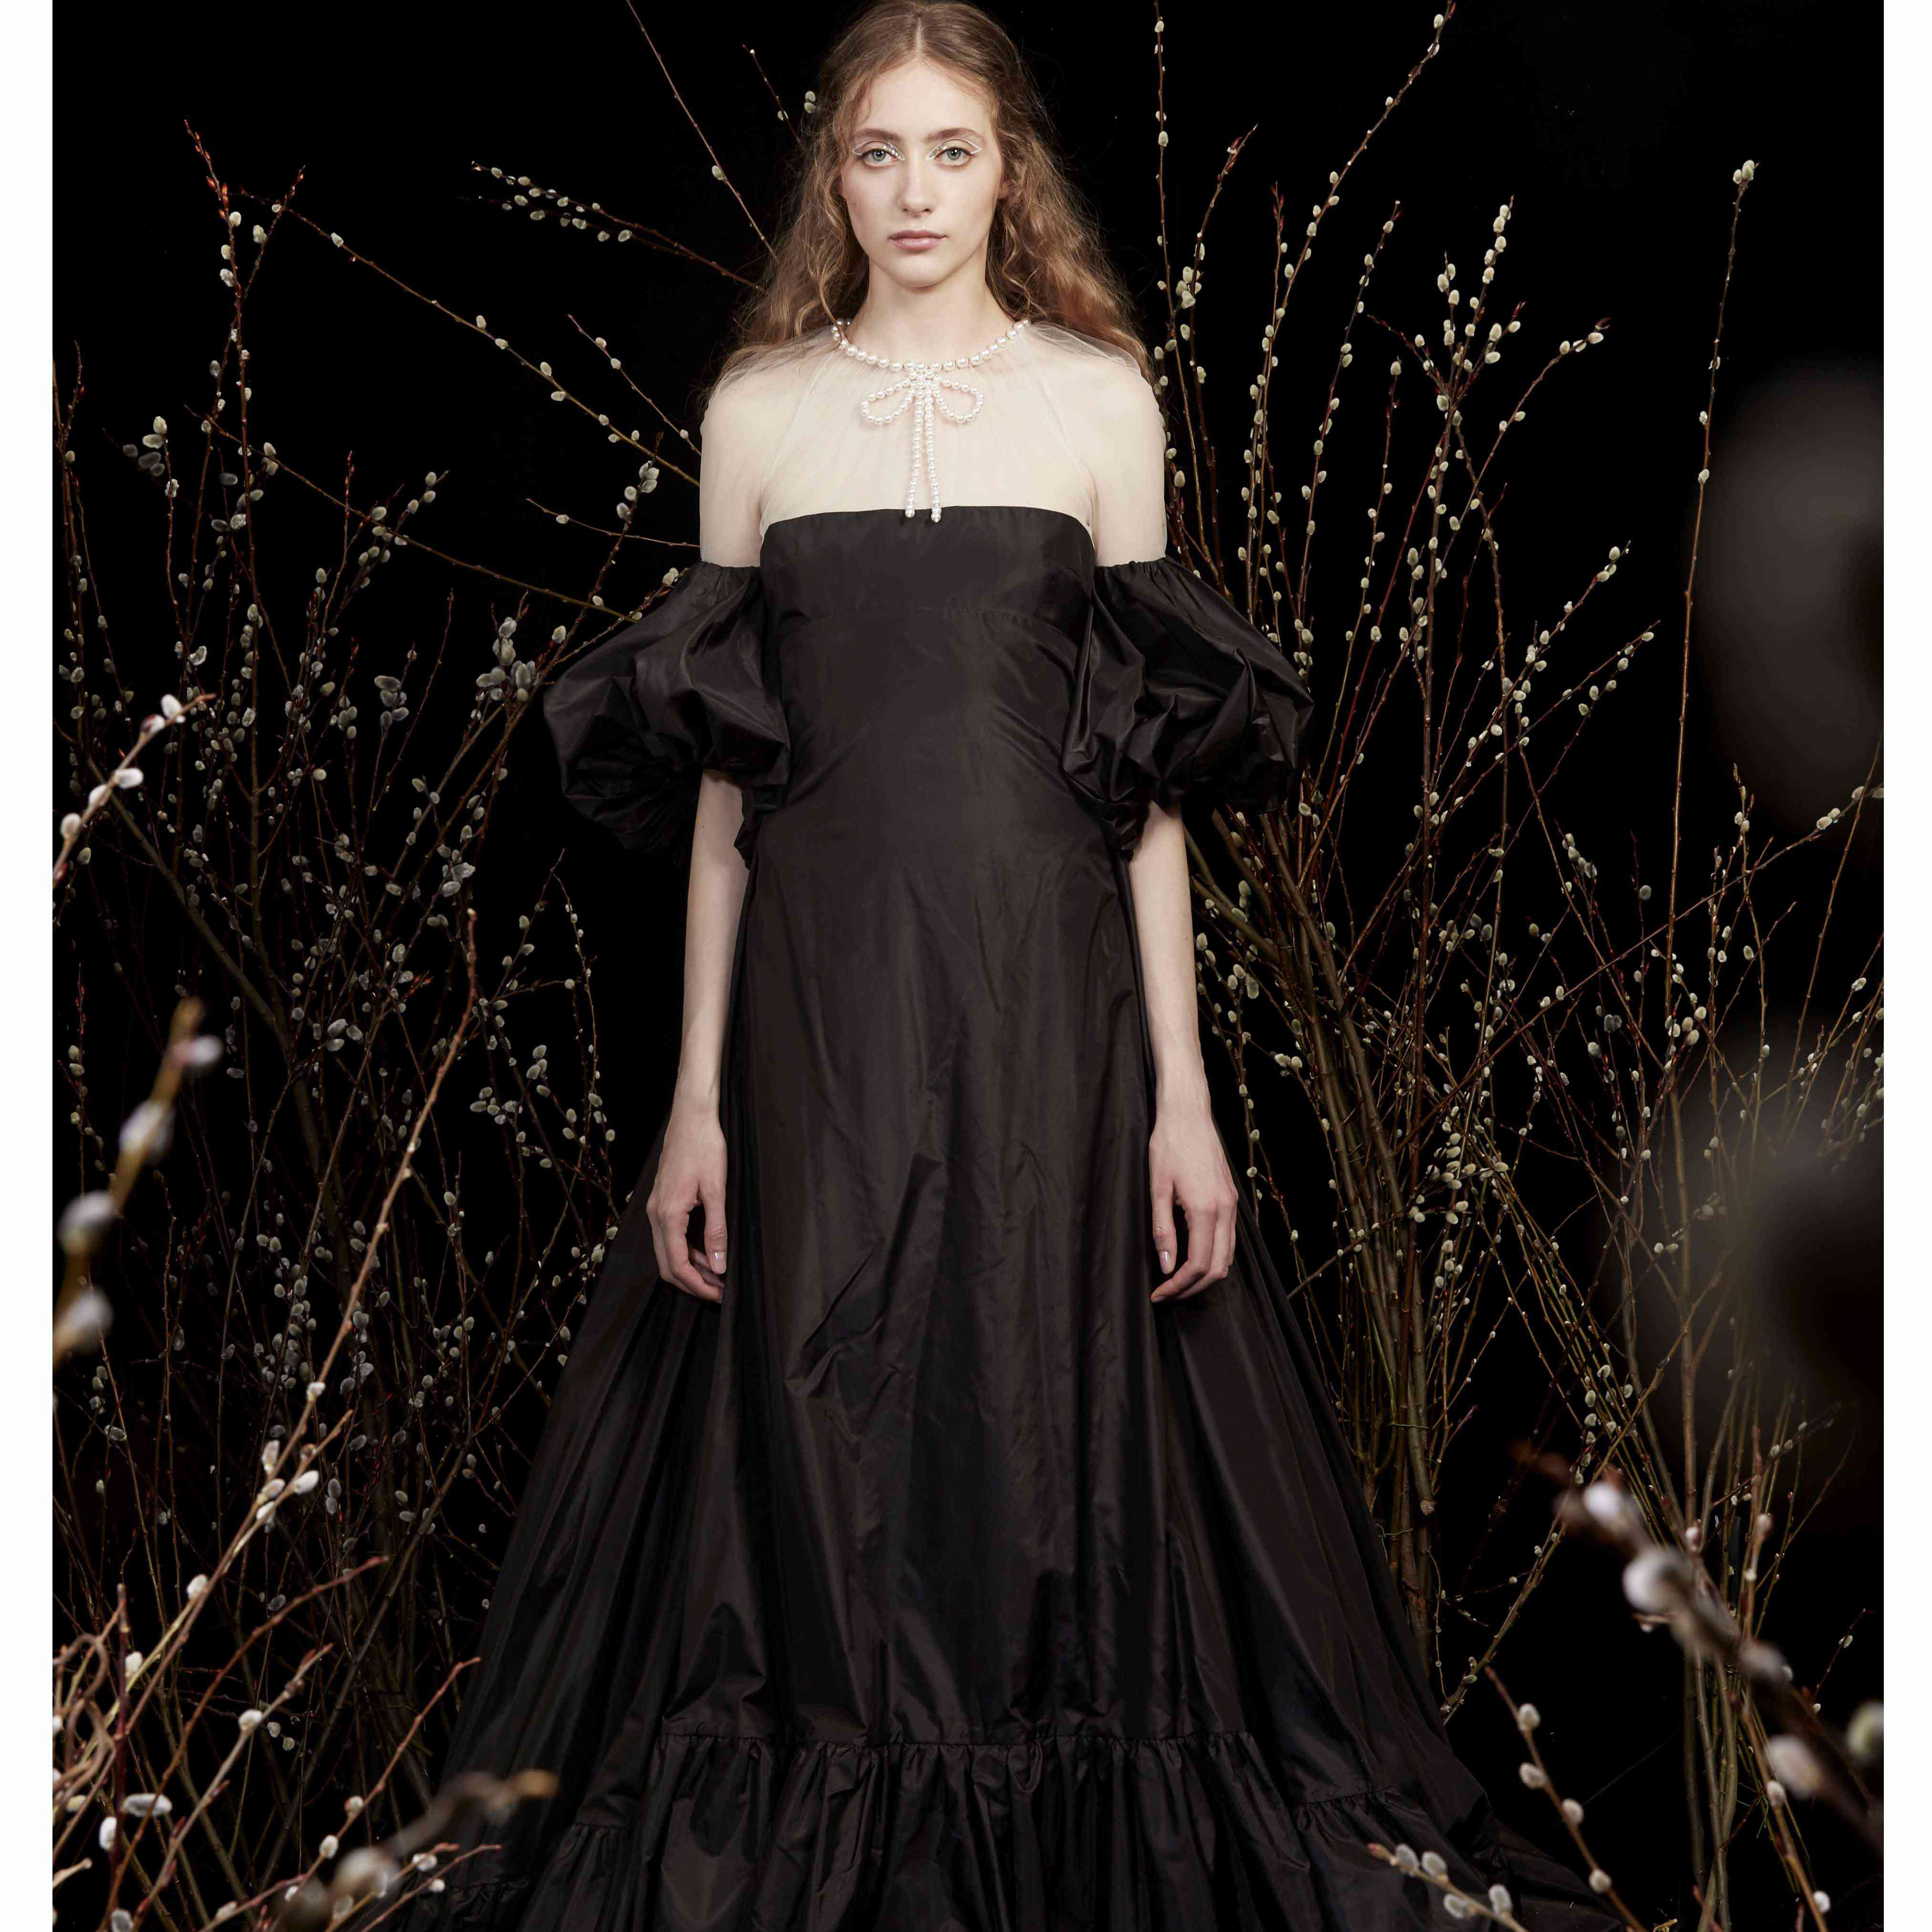 Model in black wedding dress with puff sleeves